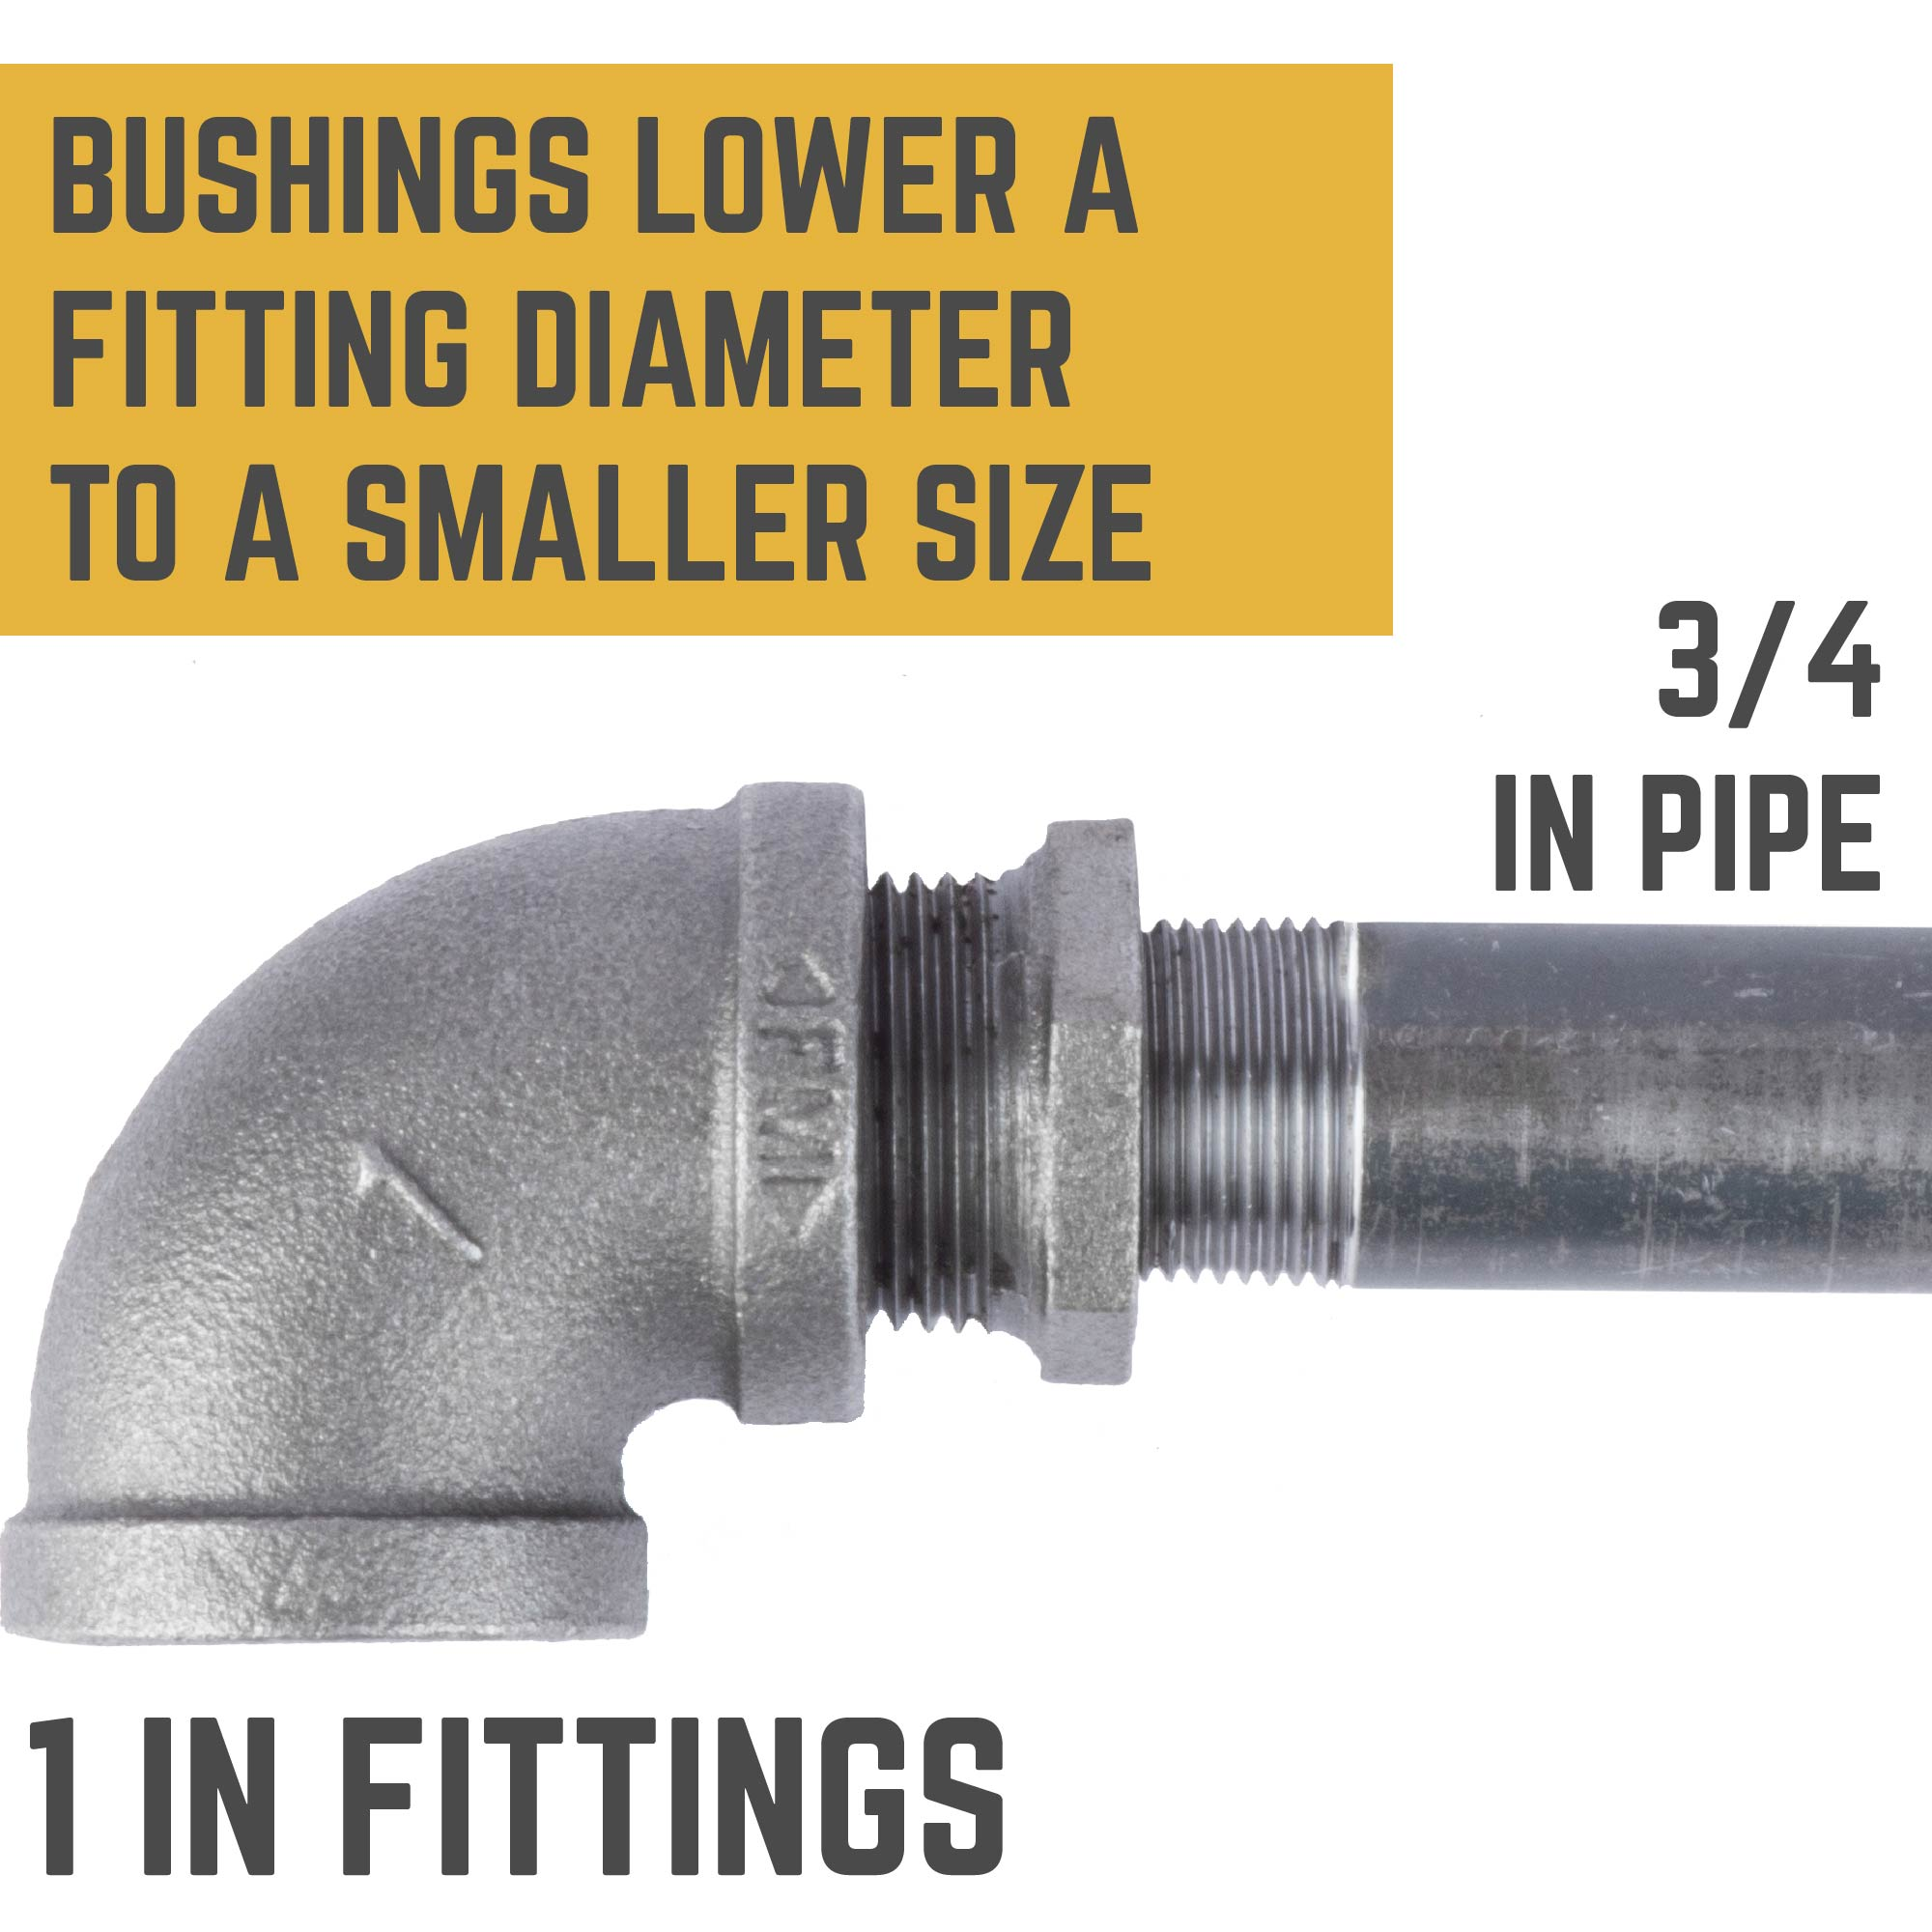 1 IN X 3/4 IN BUSHING